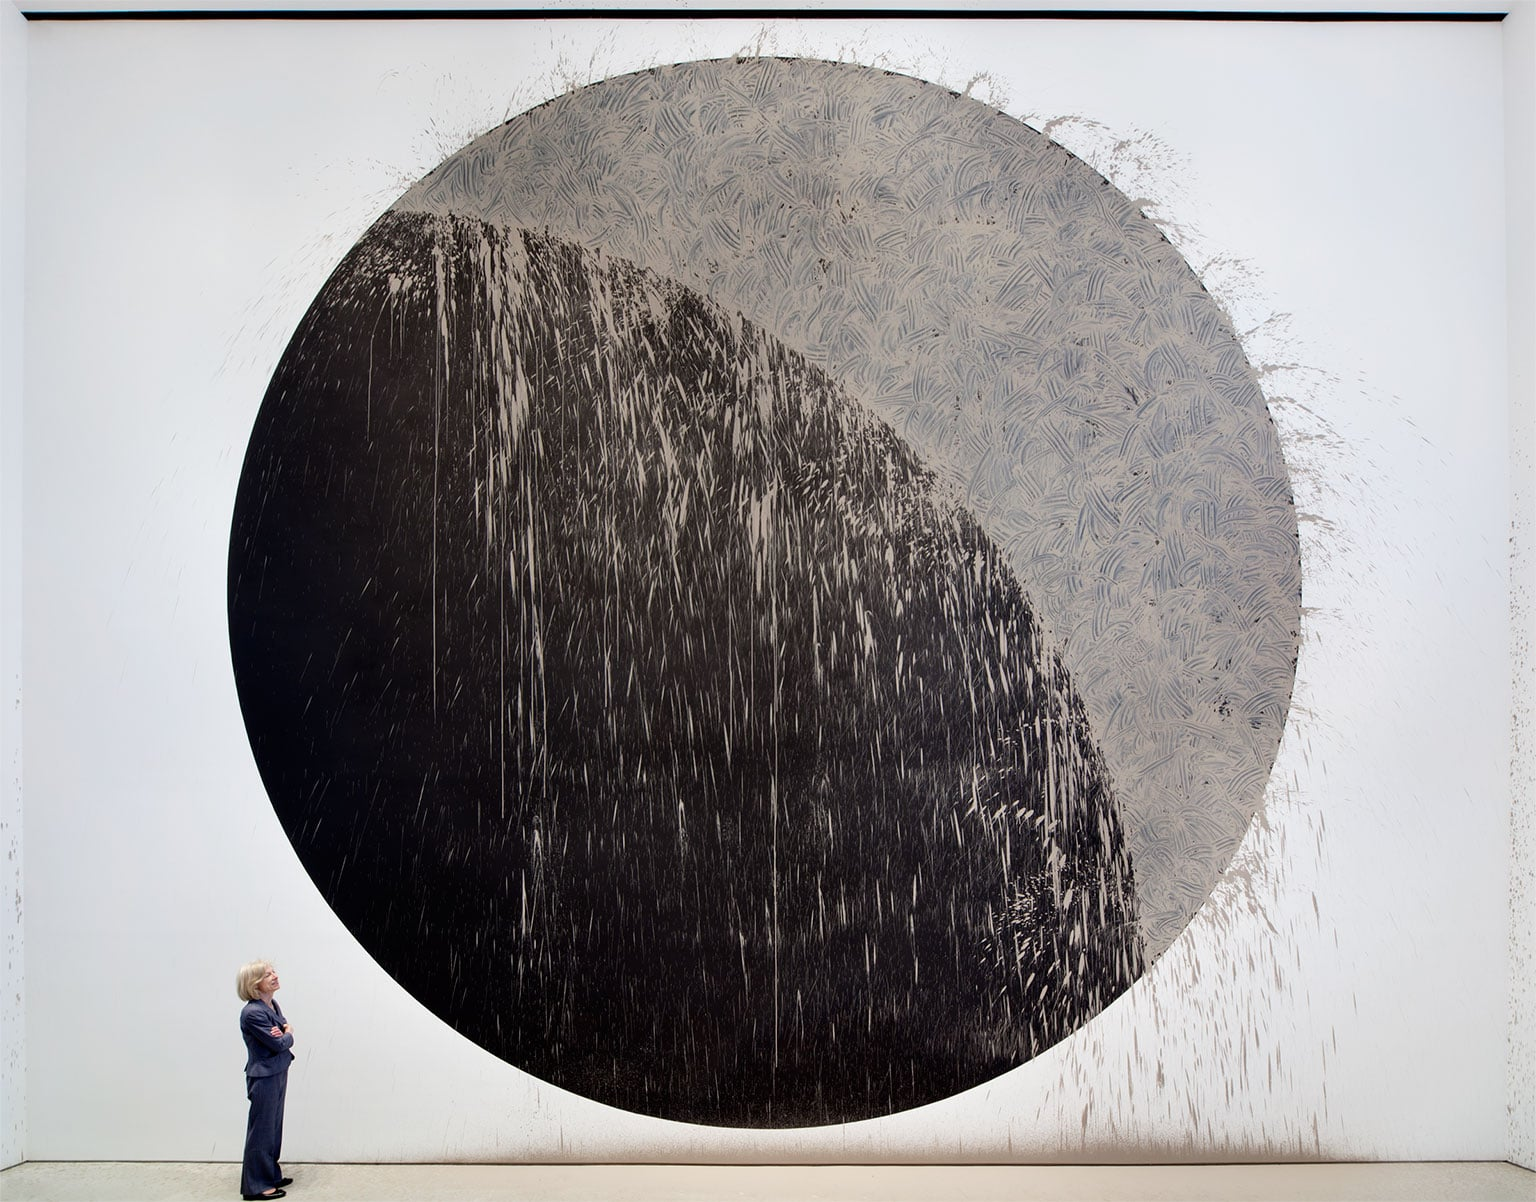 2. Richard Long: Time and Space, Arnolfini, Bristol. Free entry to all - River Avon Mud Crescent, New York, 2011. Courtesy the artist